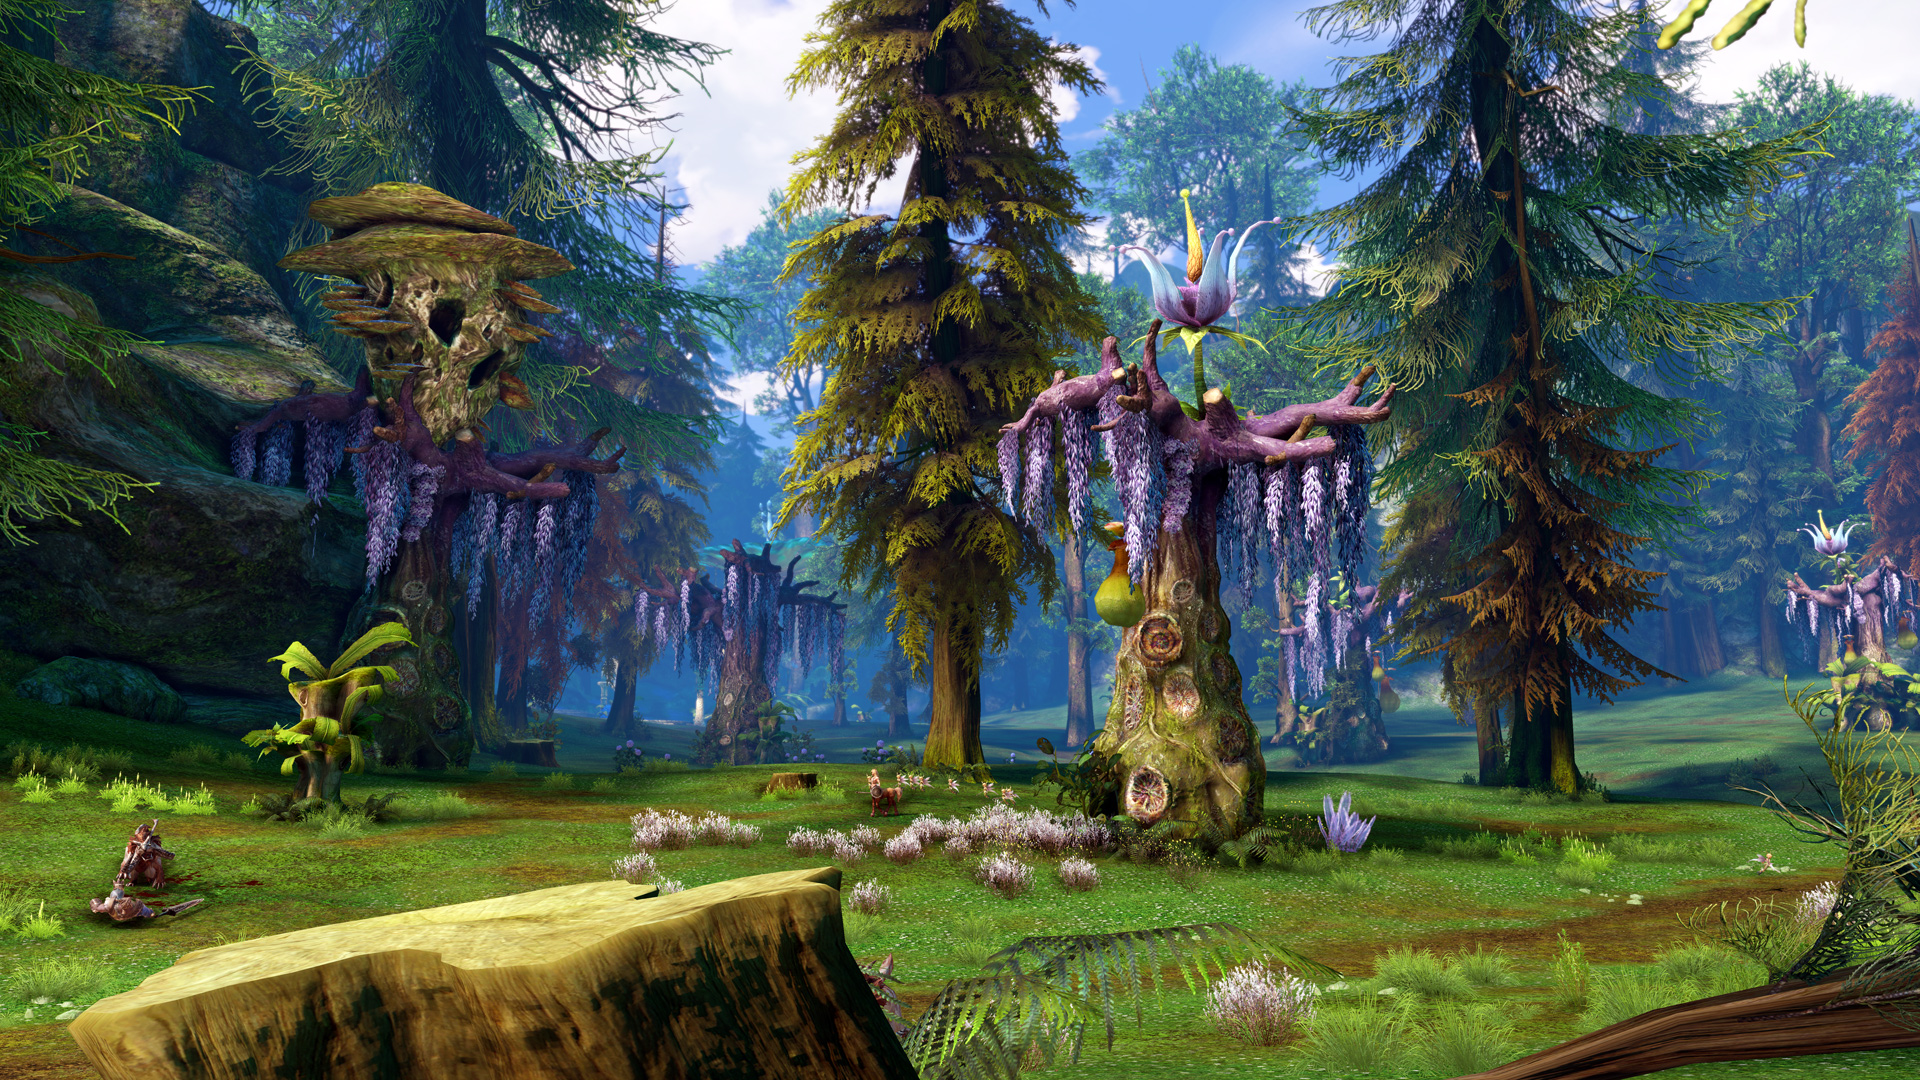 sonomaa games this tera wallpaper long time going awhile desktop contest seem find cant thread other from that entries journal